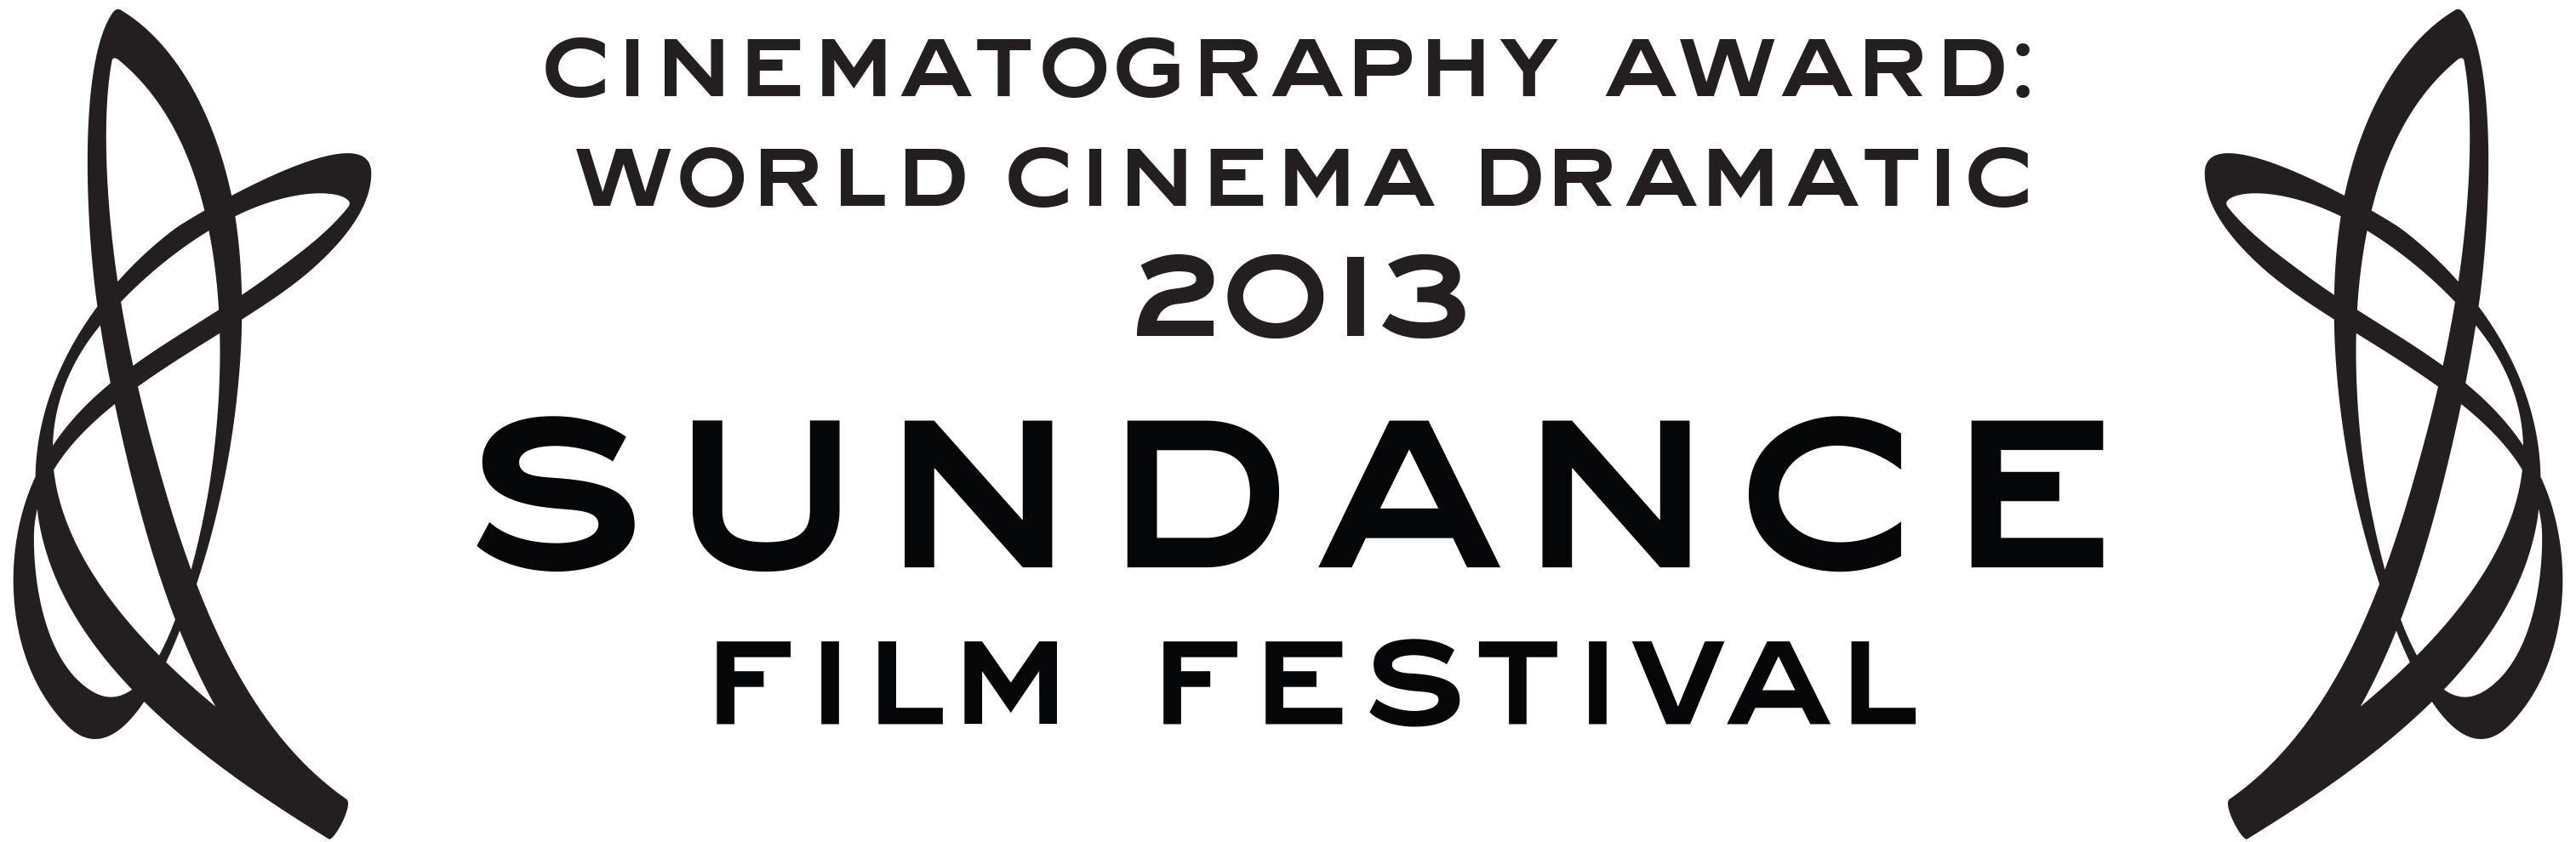 World Cinematography Award Dramatic13